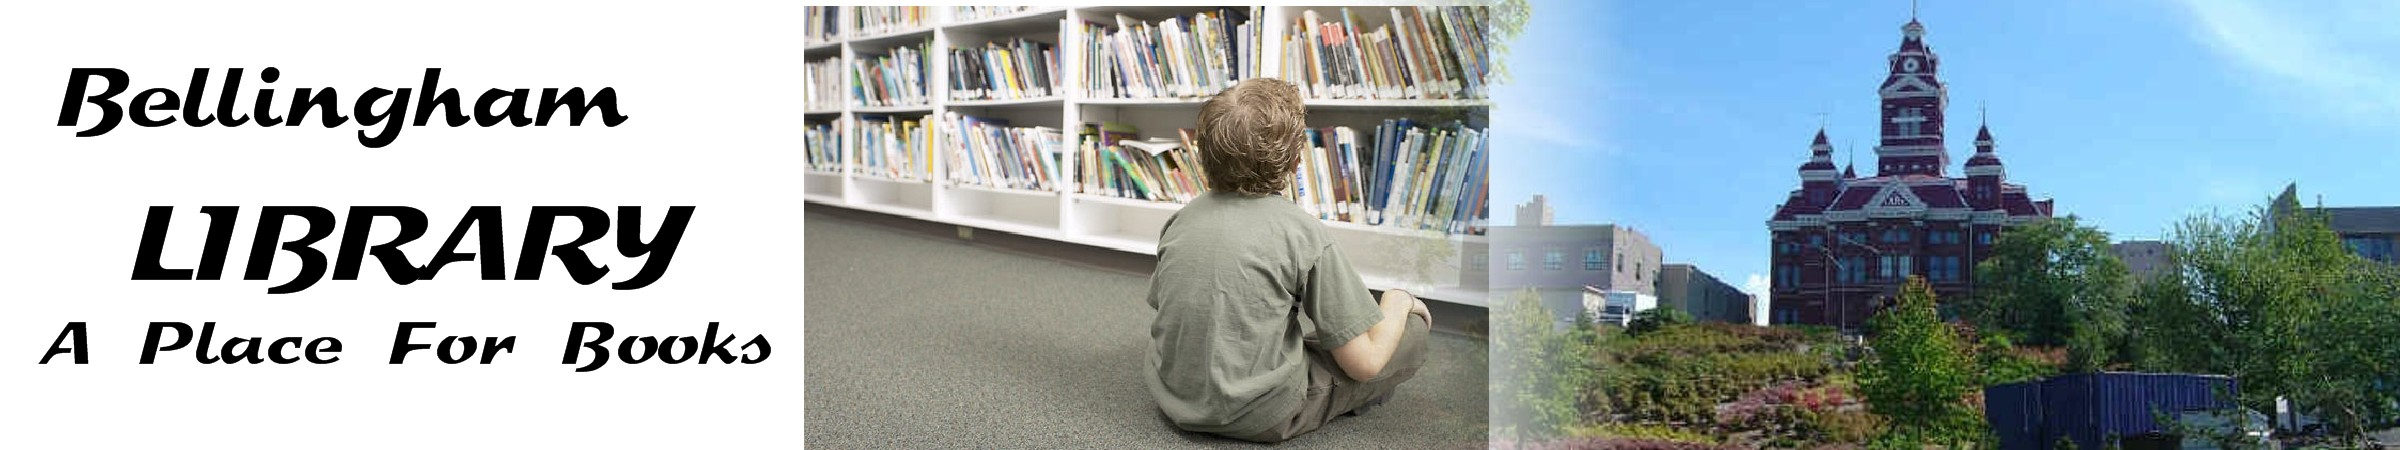 Bellingham Library - A place for learning with lots of books